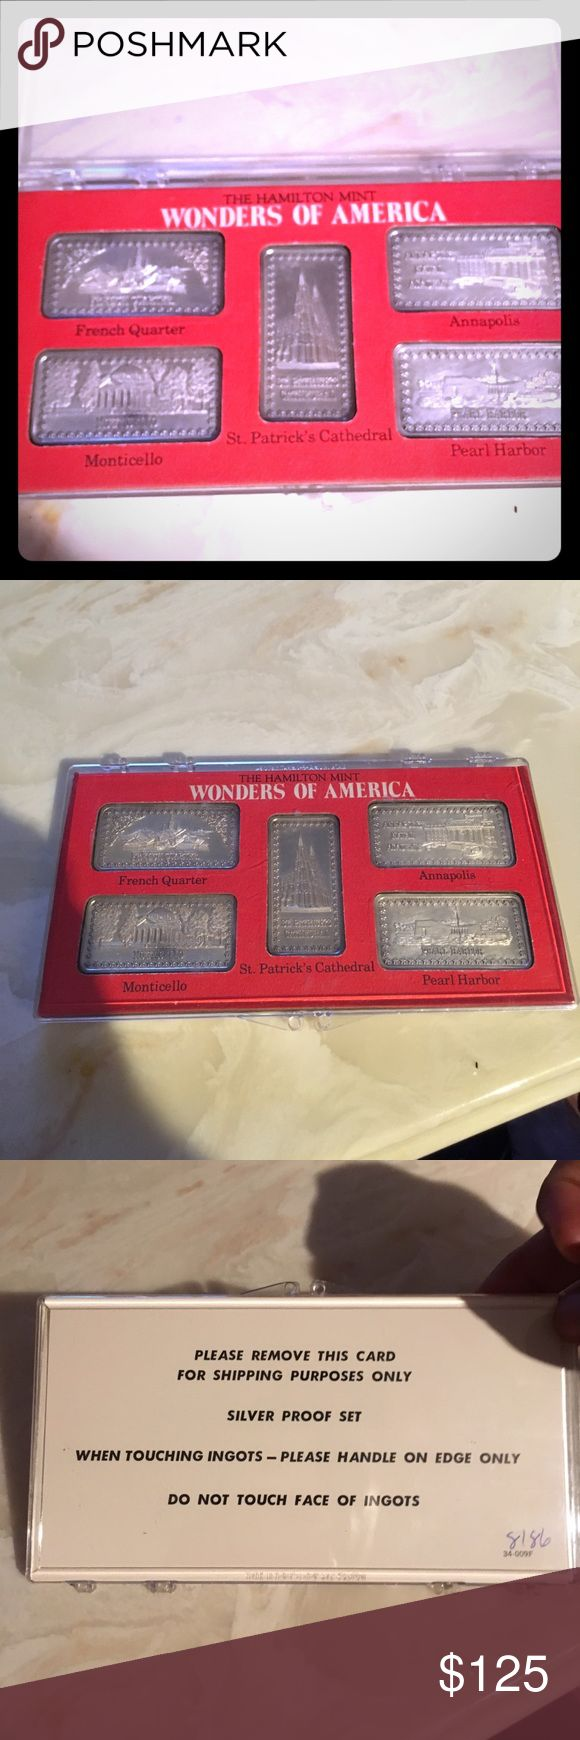 WONDERS OF AMERICA PURE SILVER OUNCE BARS WONDERS OF AMERICA PURE SILVER OUNCE BARS.  Each bar is 1 ounce of pure silver silver bars Accessories Jewelry